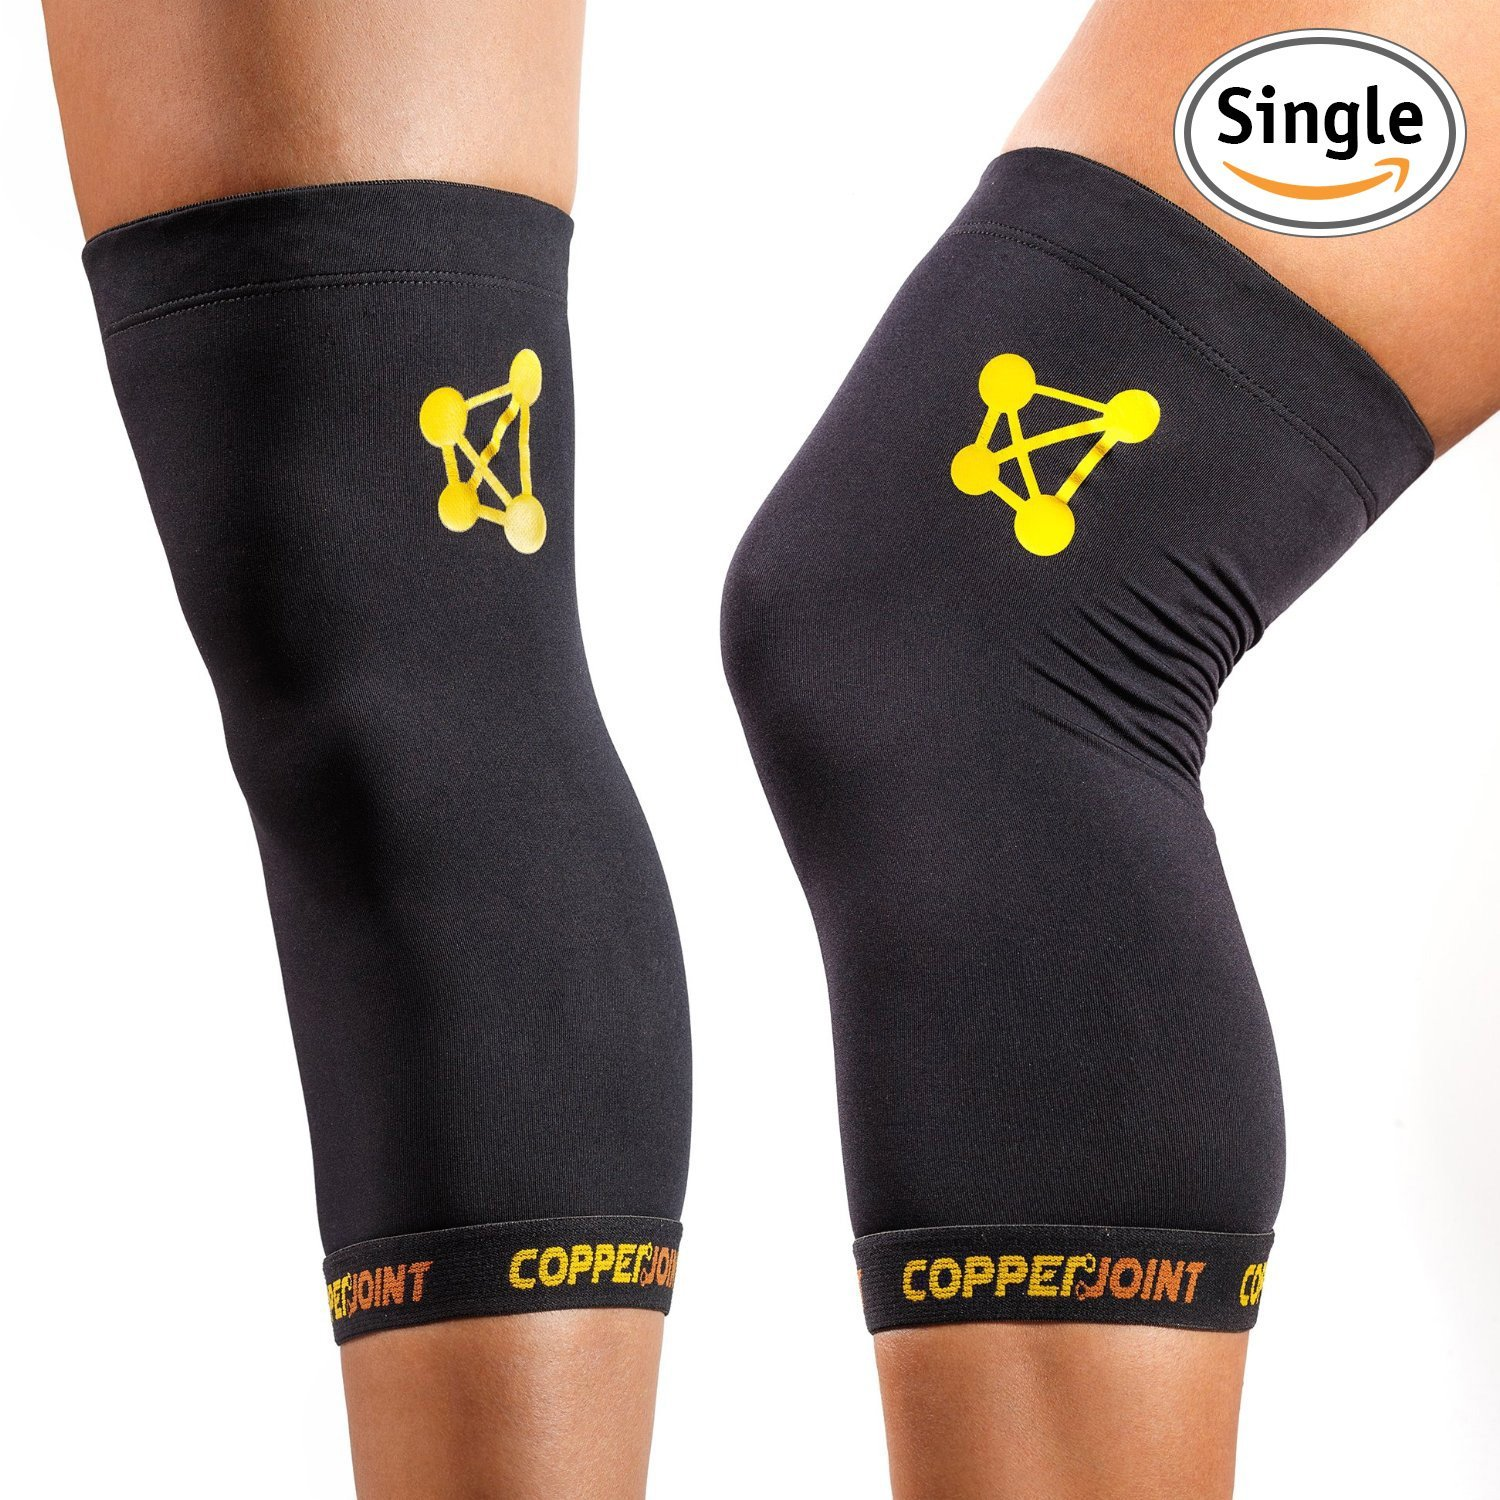 4c05bf789d CopperJoint – Compression Knee Sleeve Copper-Infused, Promotes Increased  Blood Flow to The Knee While Supporting Tendons